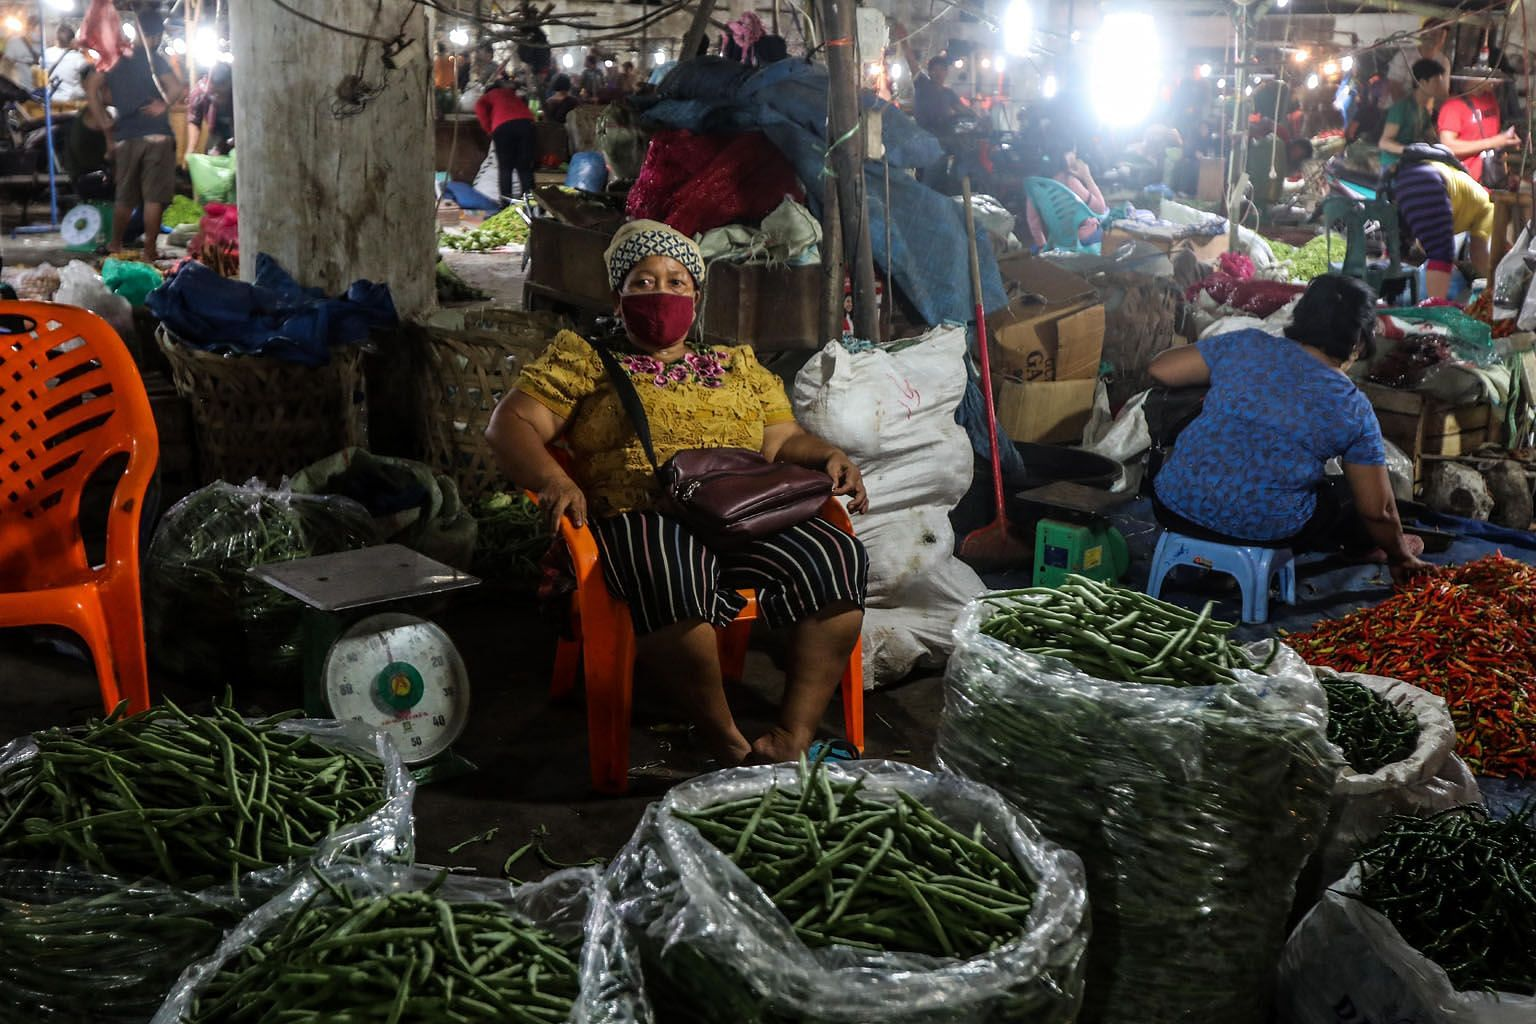 A vegetable vendor waiting for customers on Thursday at a market in Medan in Indonesia's North Sumatra province, as businesses struggle to survive amid strict social distancing rules.